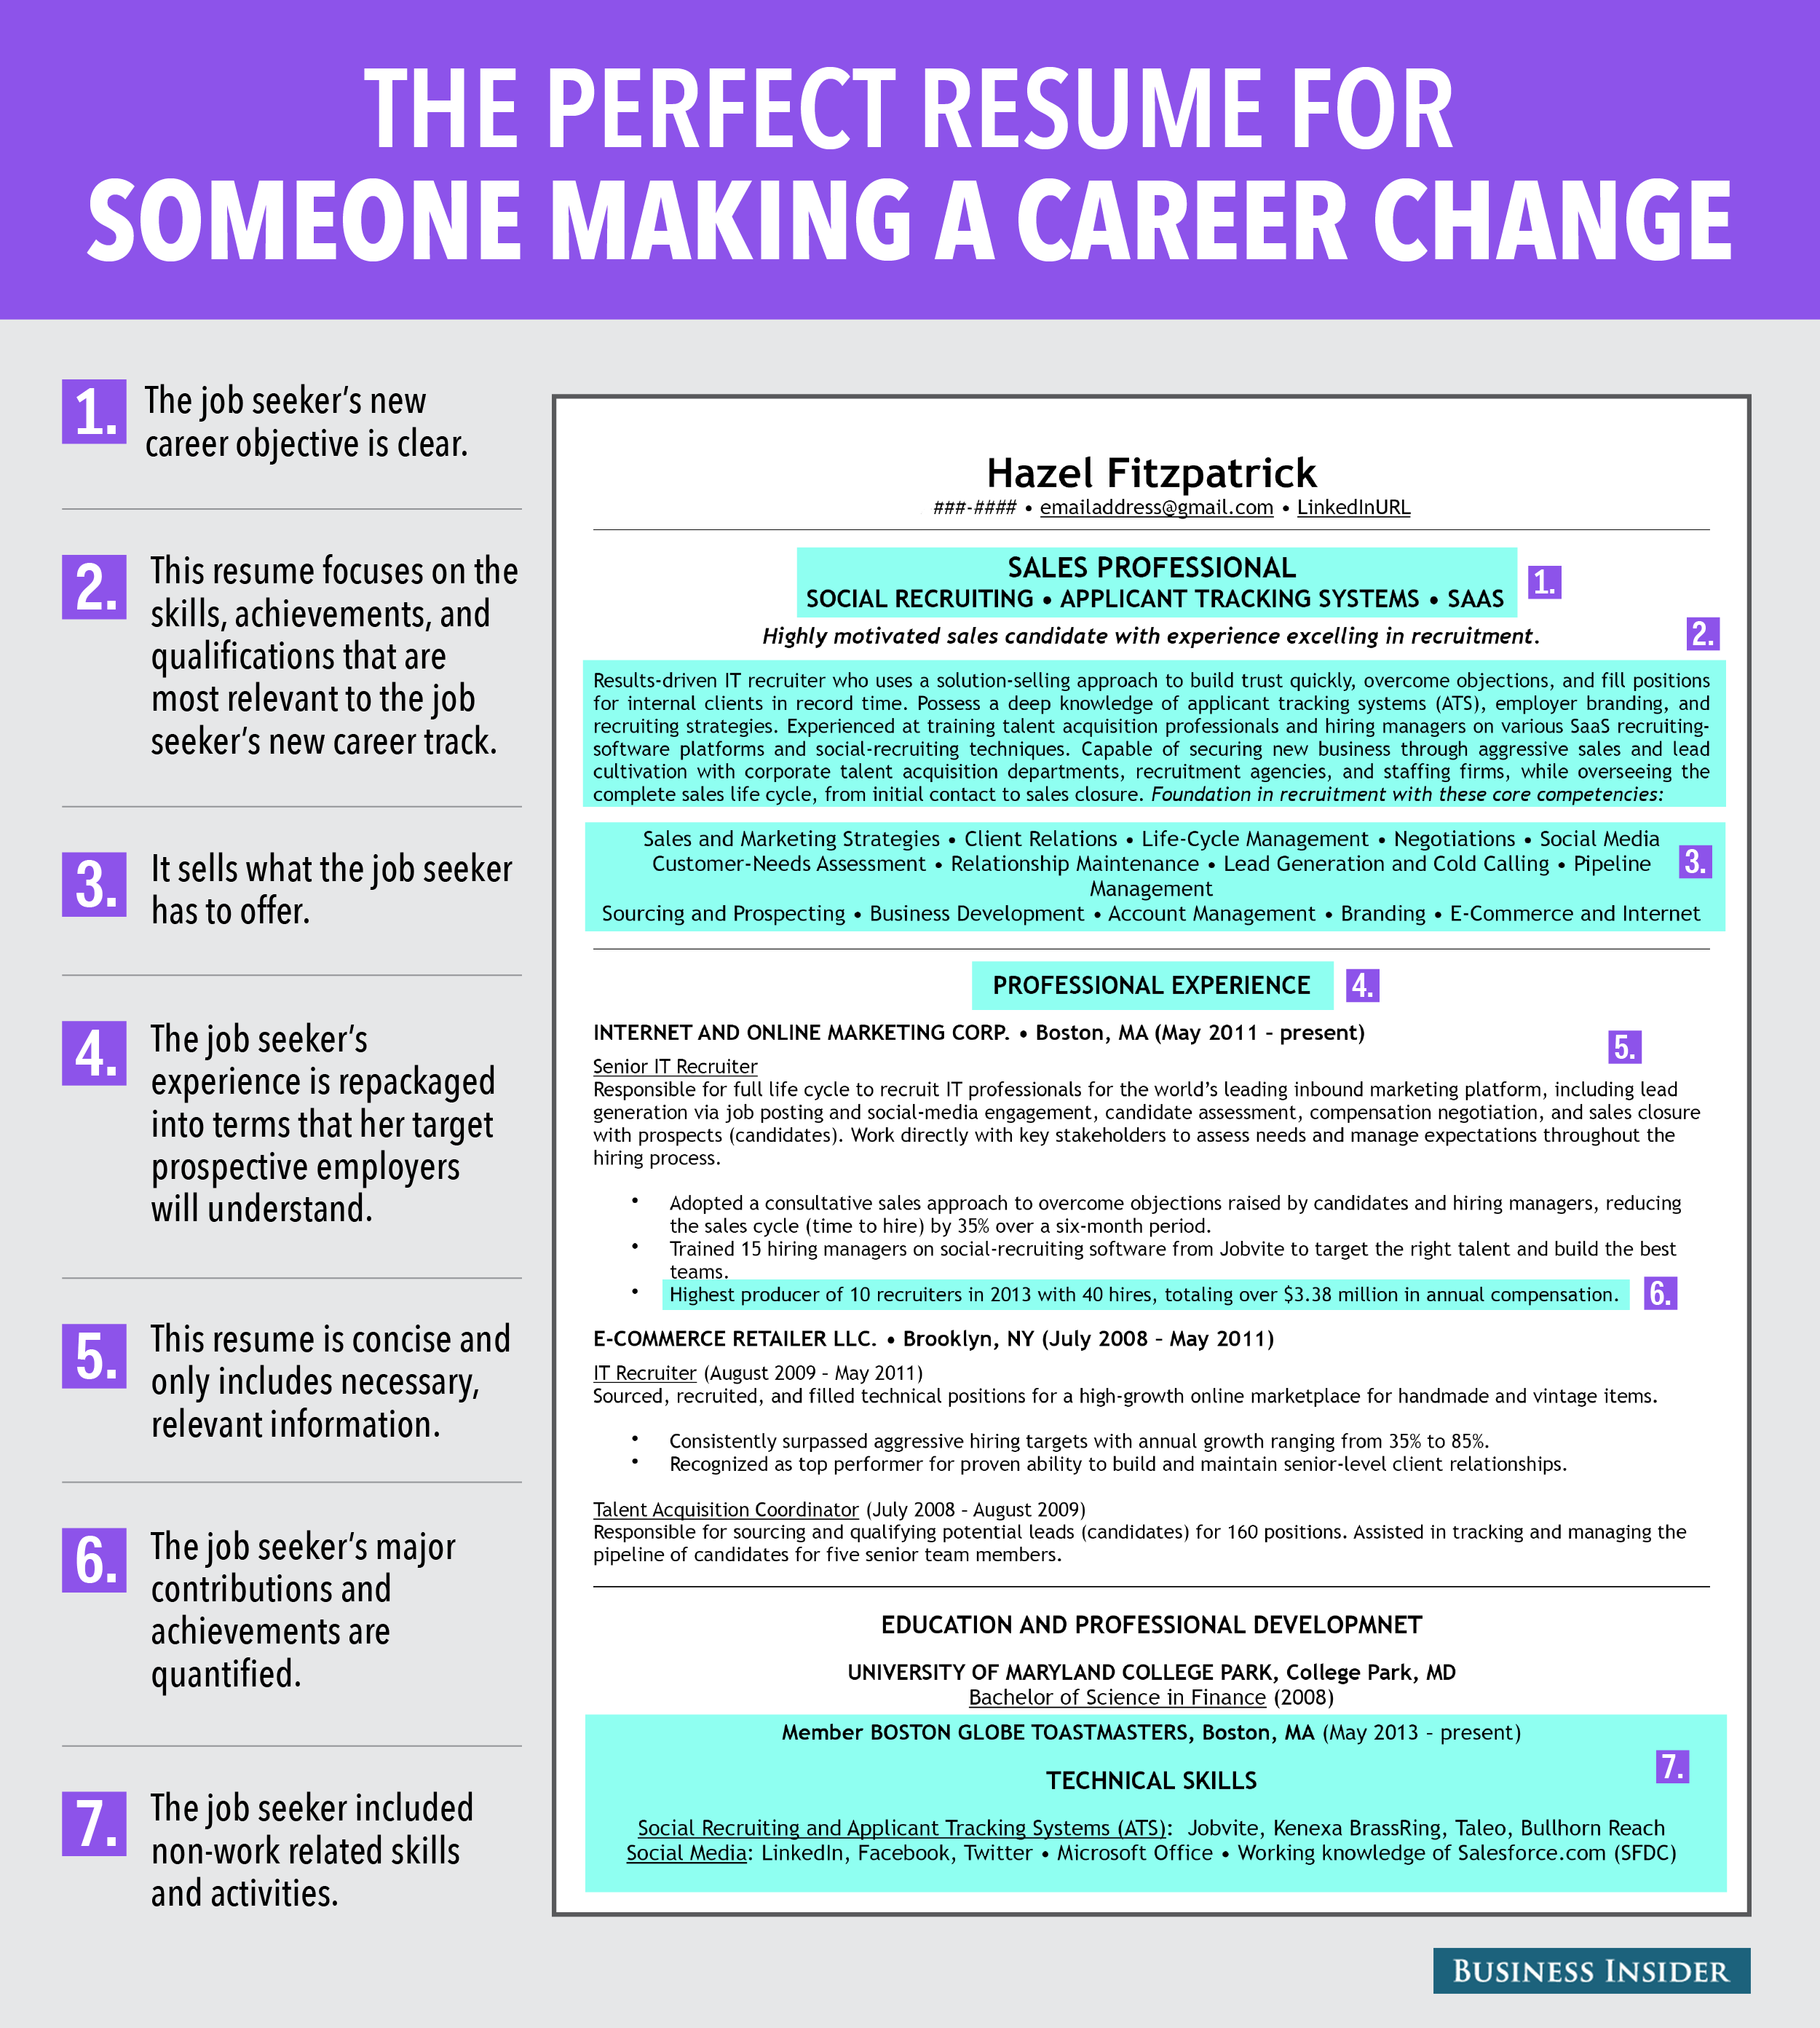 7 Reasons This Is An Ideal Resume For Someone Making A